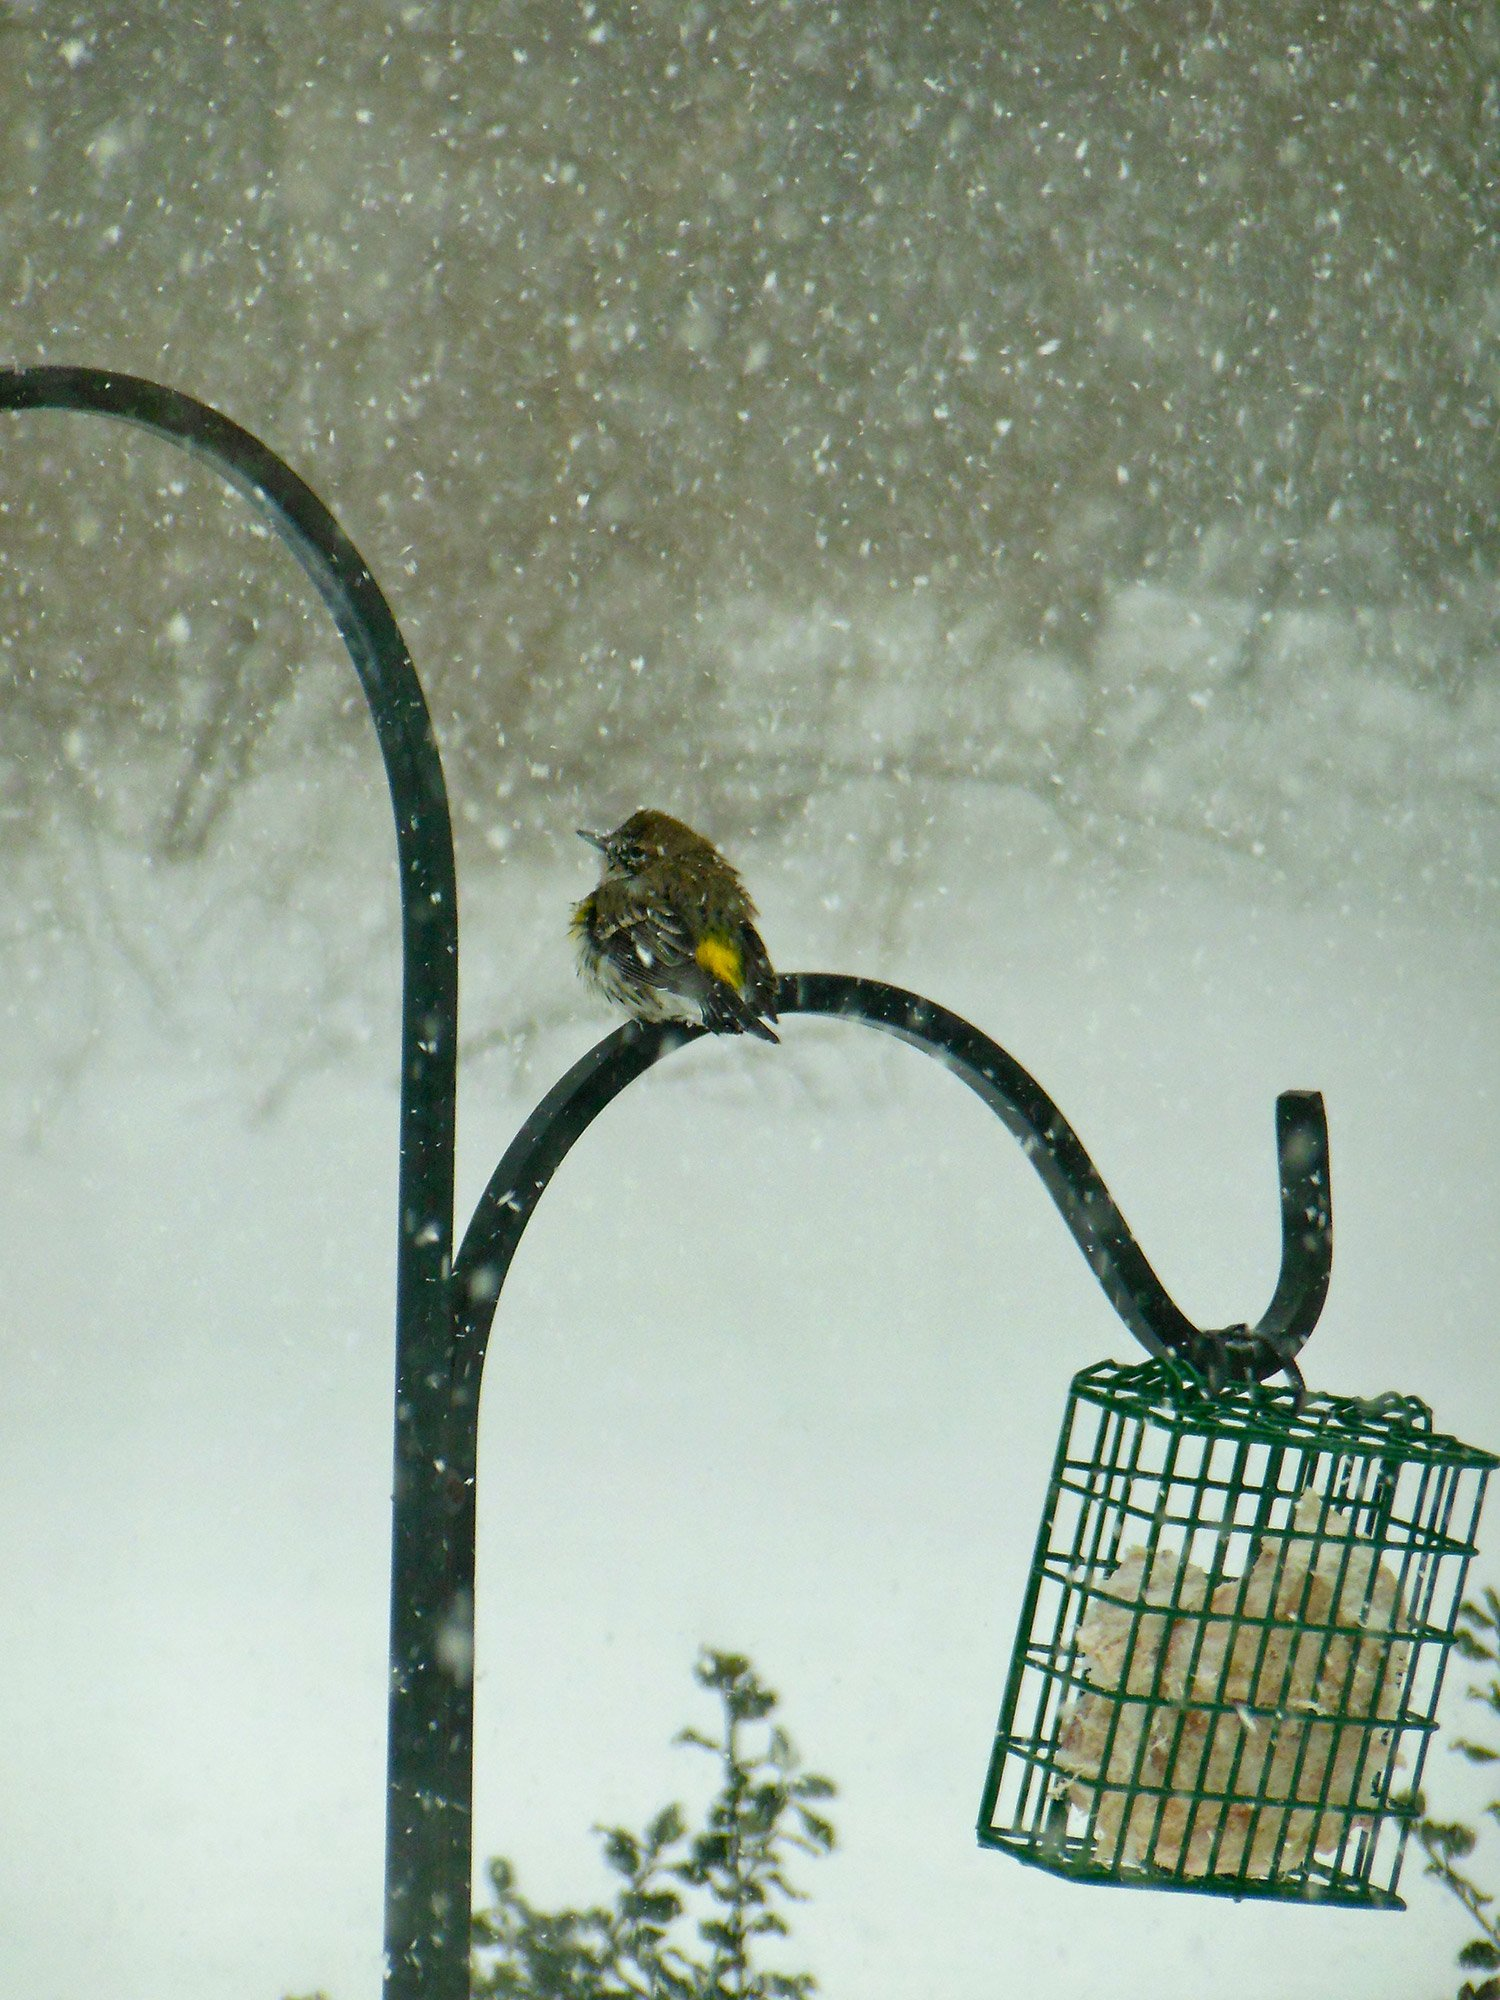 A yellow-dumped warbler stakes out his place at the suet cage in the middle of winter storm in this photo from Ellie Andrews of Wells.